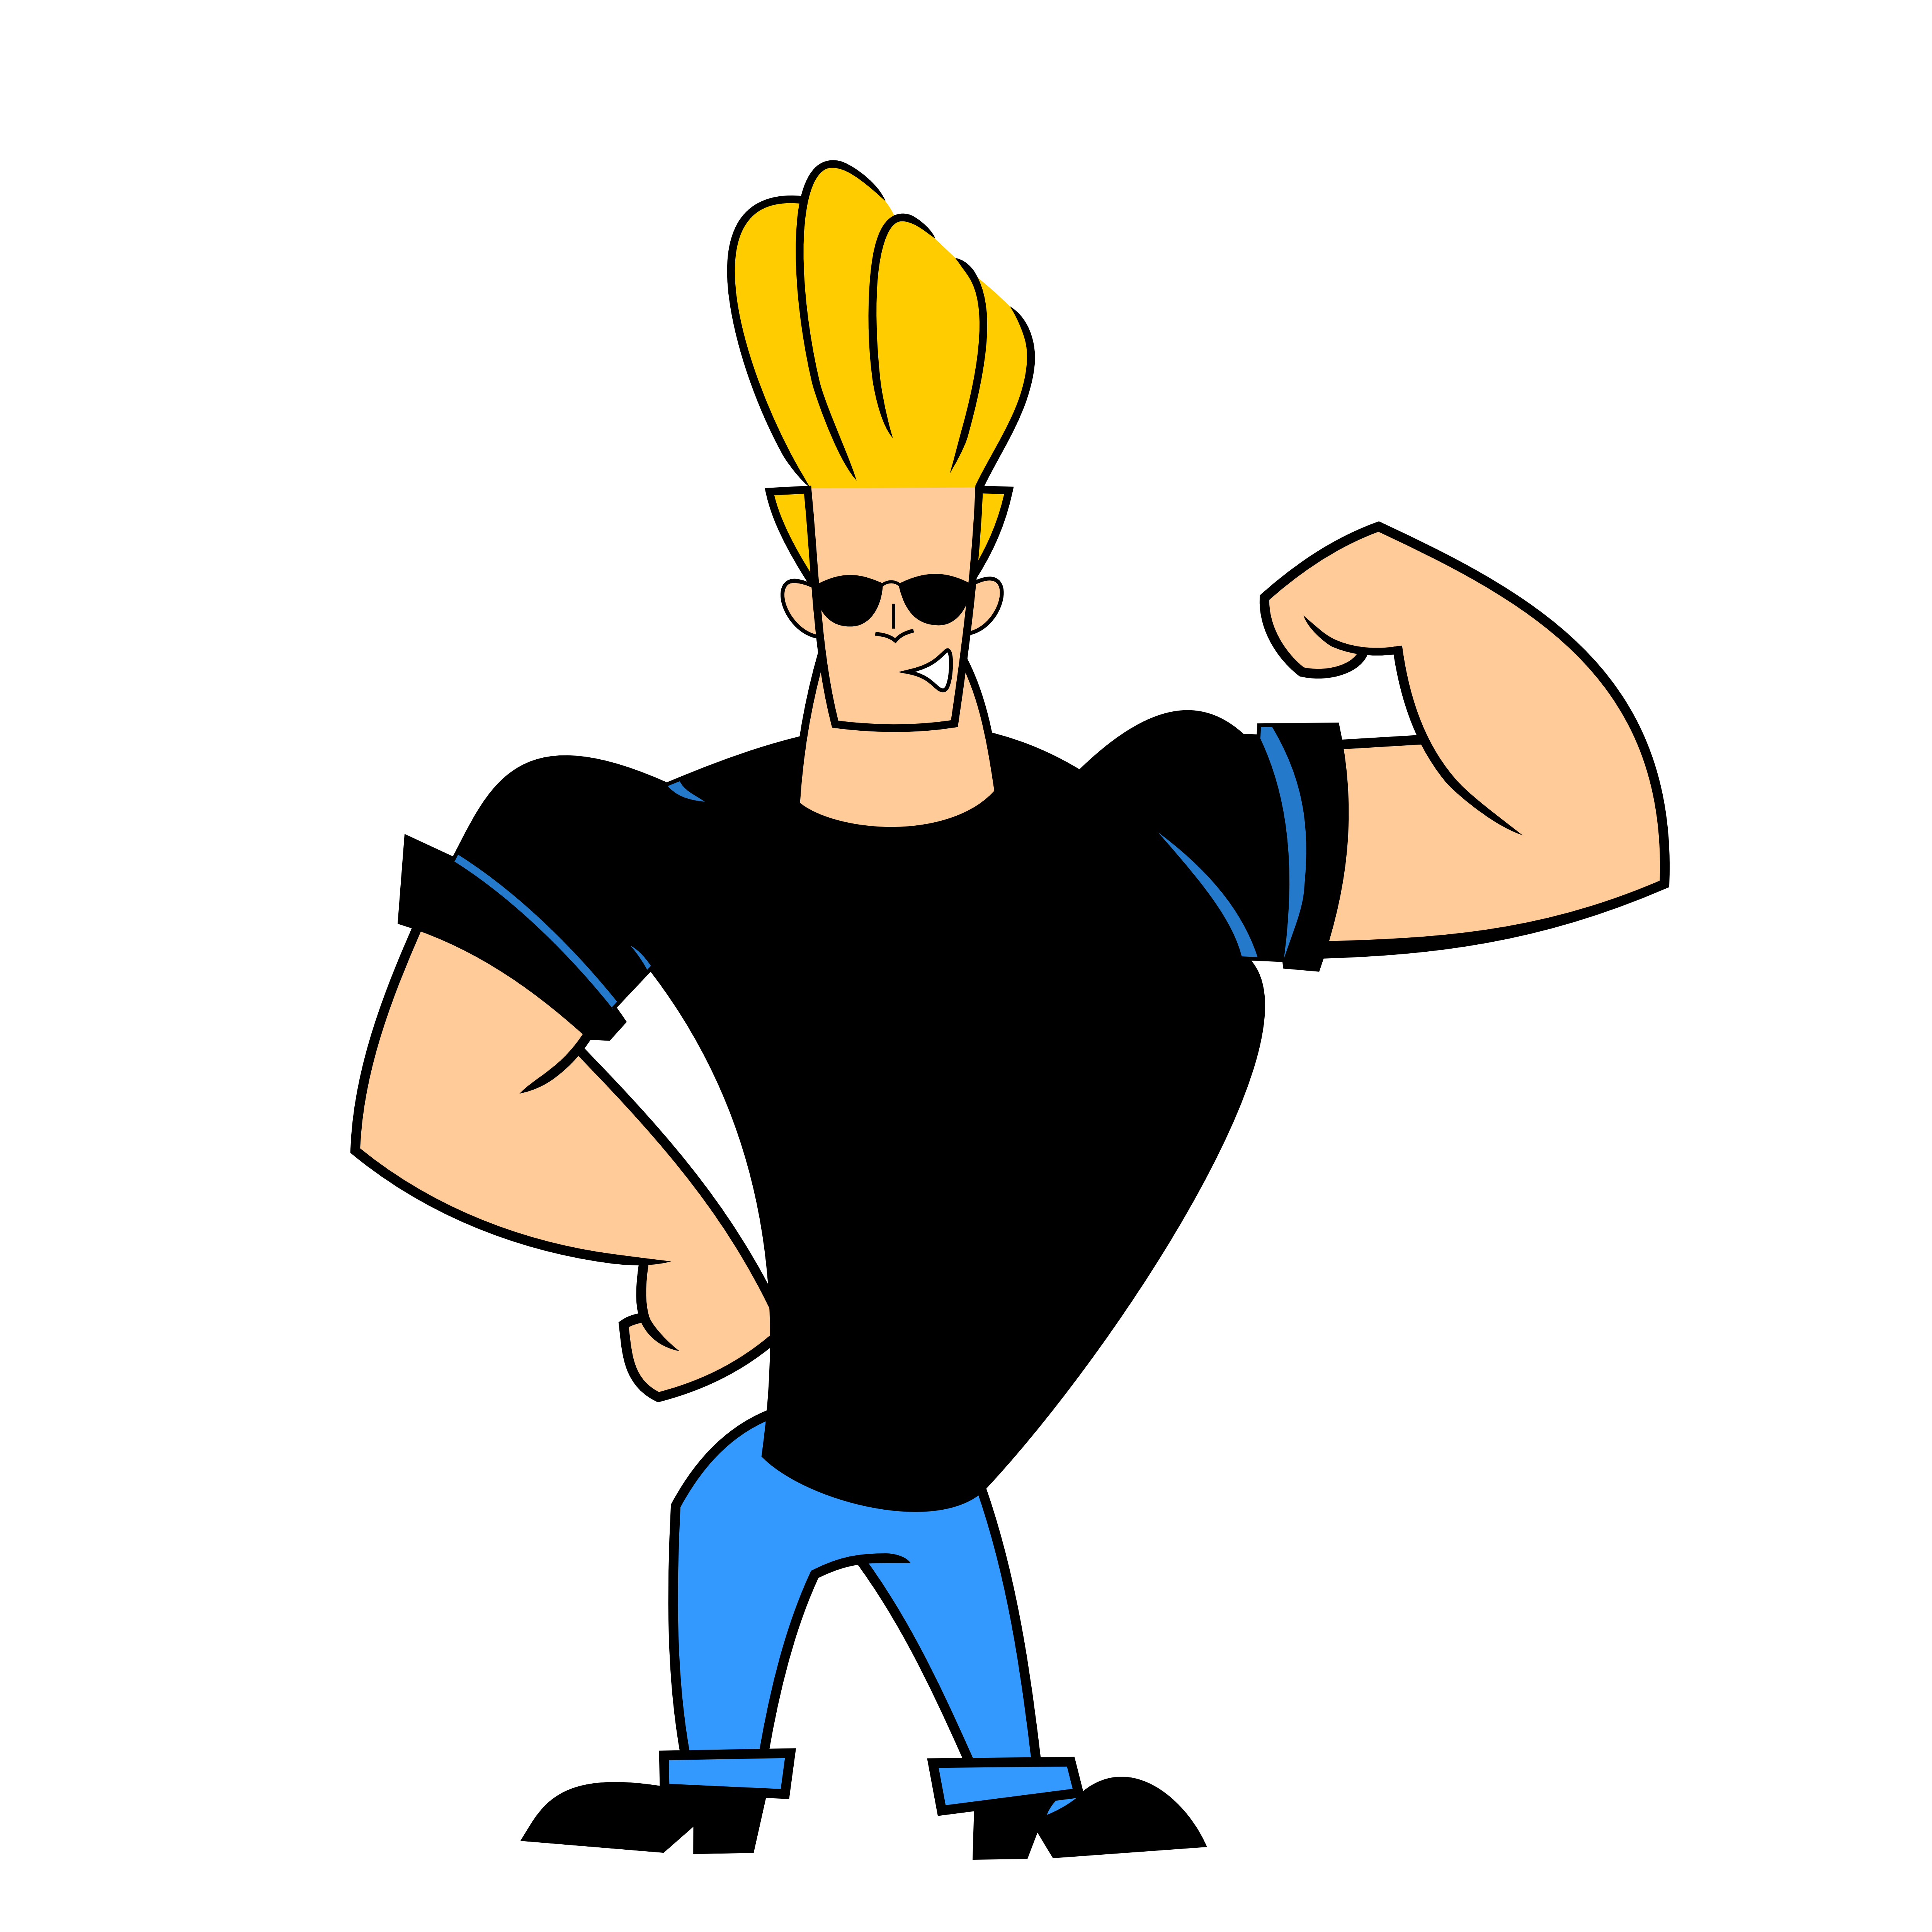 Scooby doo clipart glorious. Johnny bravo google search